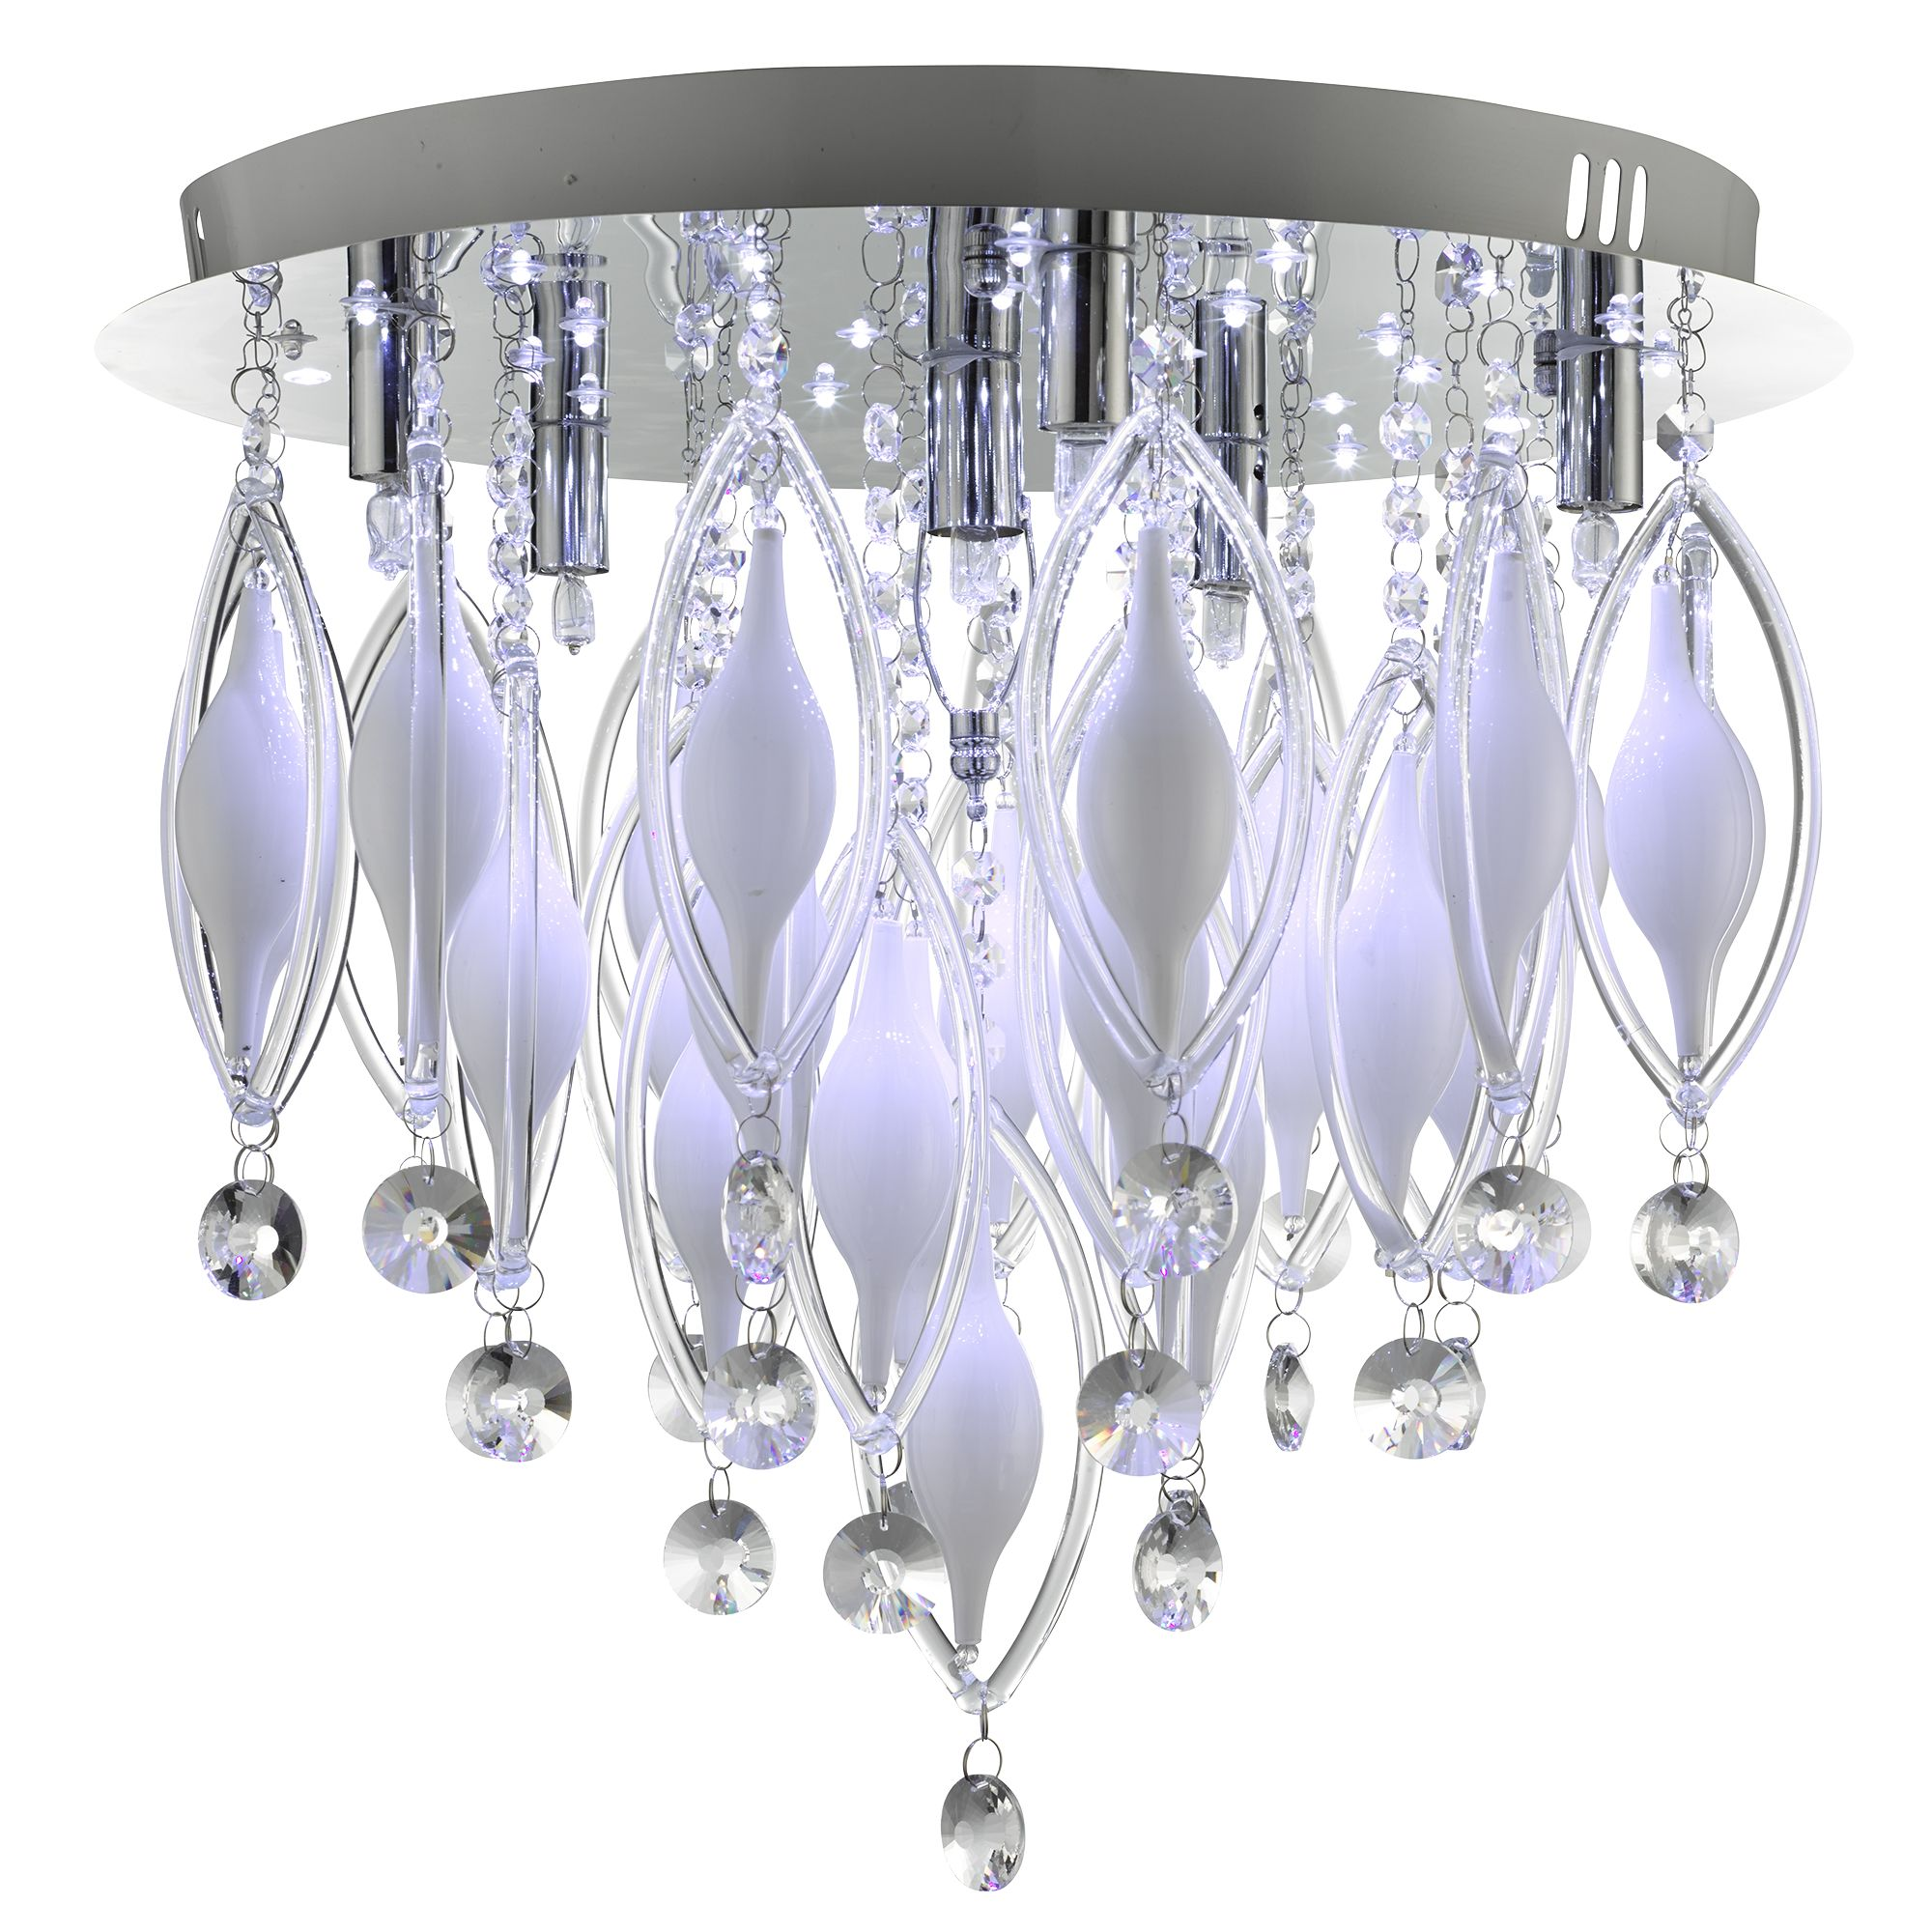 Spindle Chrome 6 Led Fitting With Colour Changing Glass & Remote Control